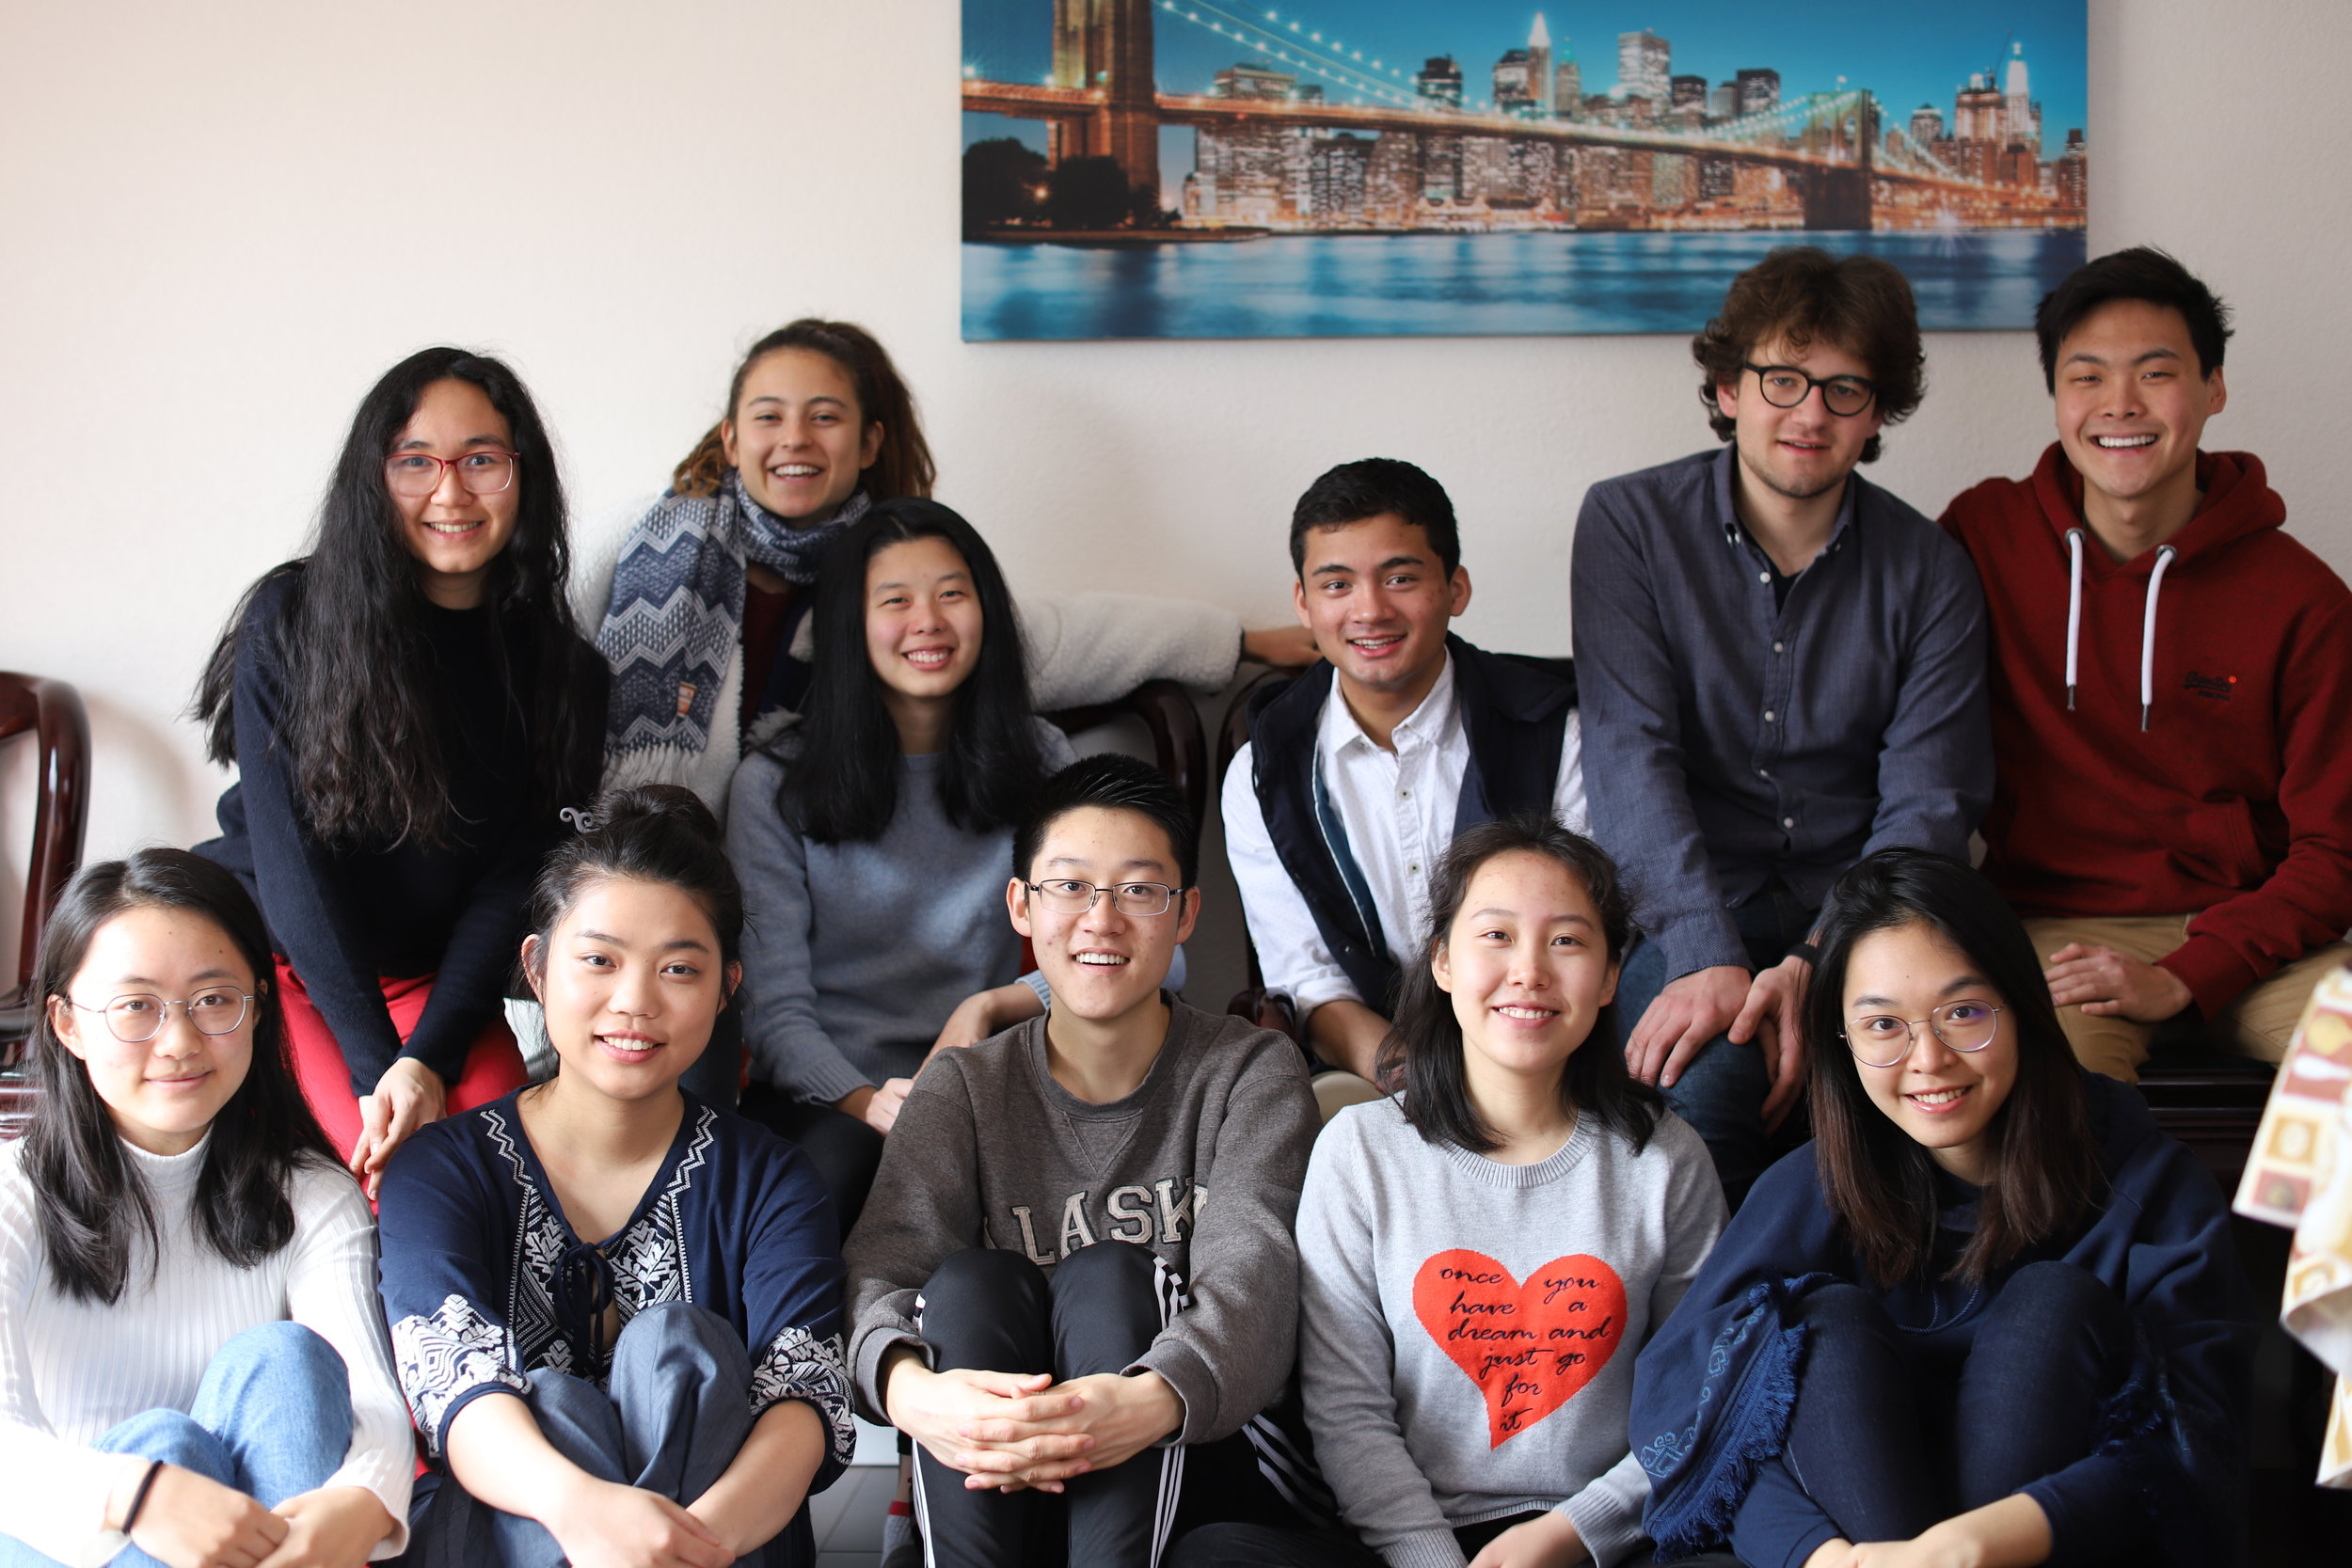 Members of the FACES team pose for a collegial photo at the FACES Annual Team Retreat. Pictured from left to right, front row: Stone Yang, Alice Yanqiu Wang, James Noh, Jiayi Li, Helynna Lin. Back row: Cathy Baron, Charlie Hoffs, Celia Xinuo Chen, Nick Shankar, Frédéric Urech, Troy Shen. Photographer: Eric Kuang.